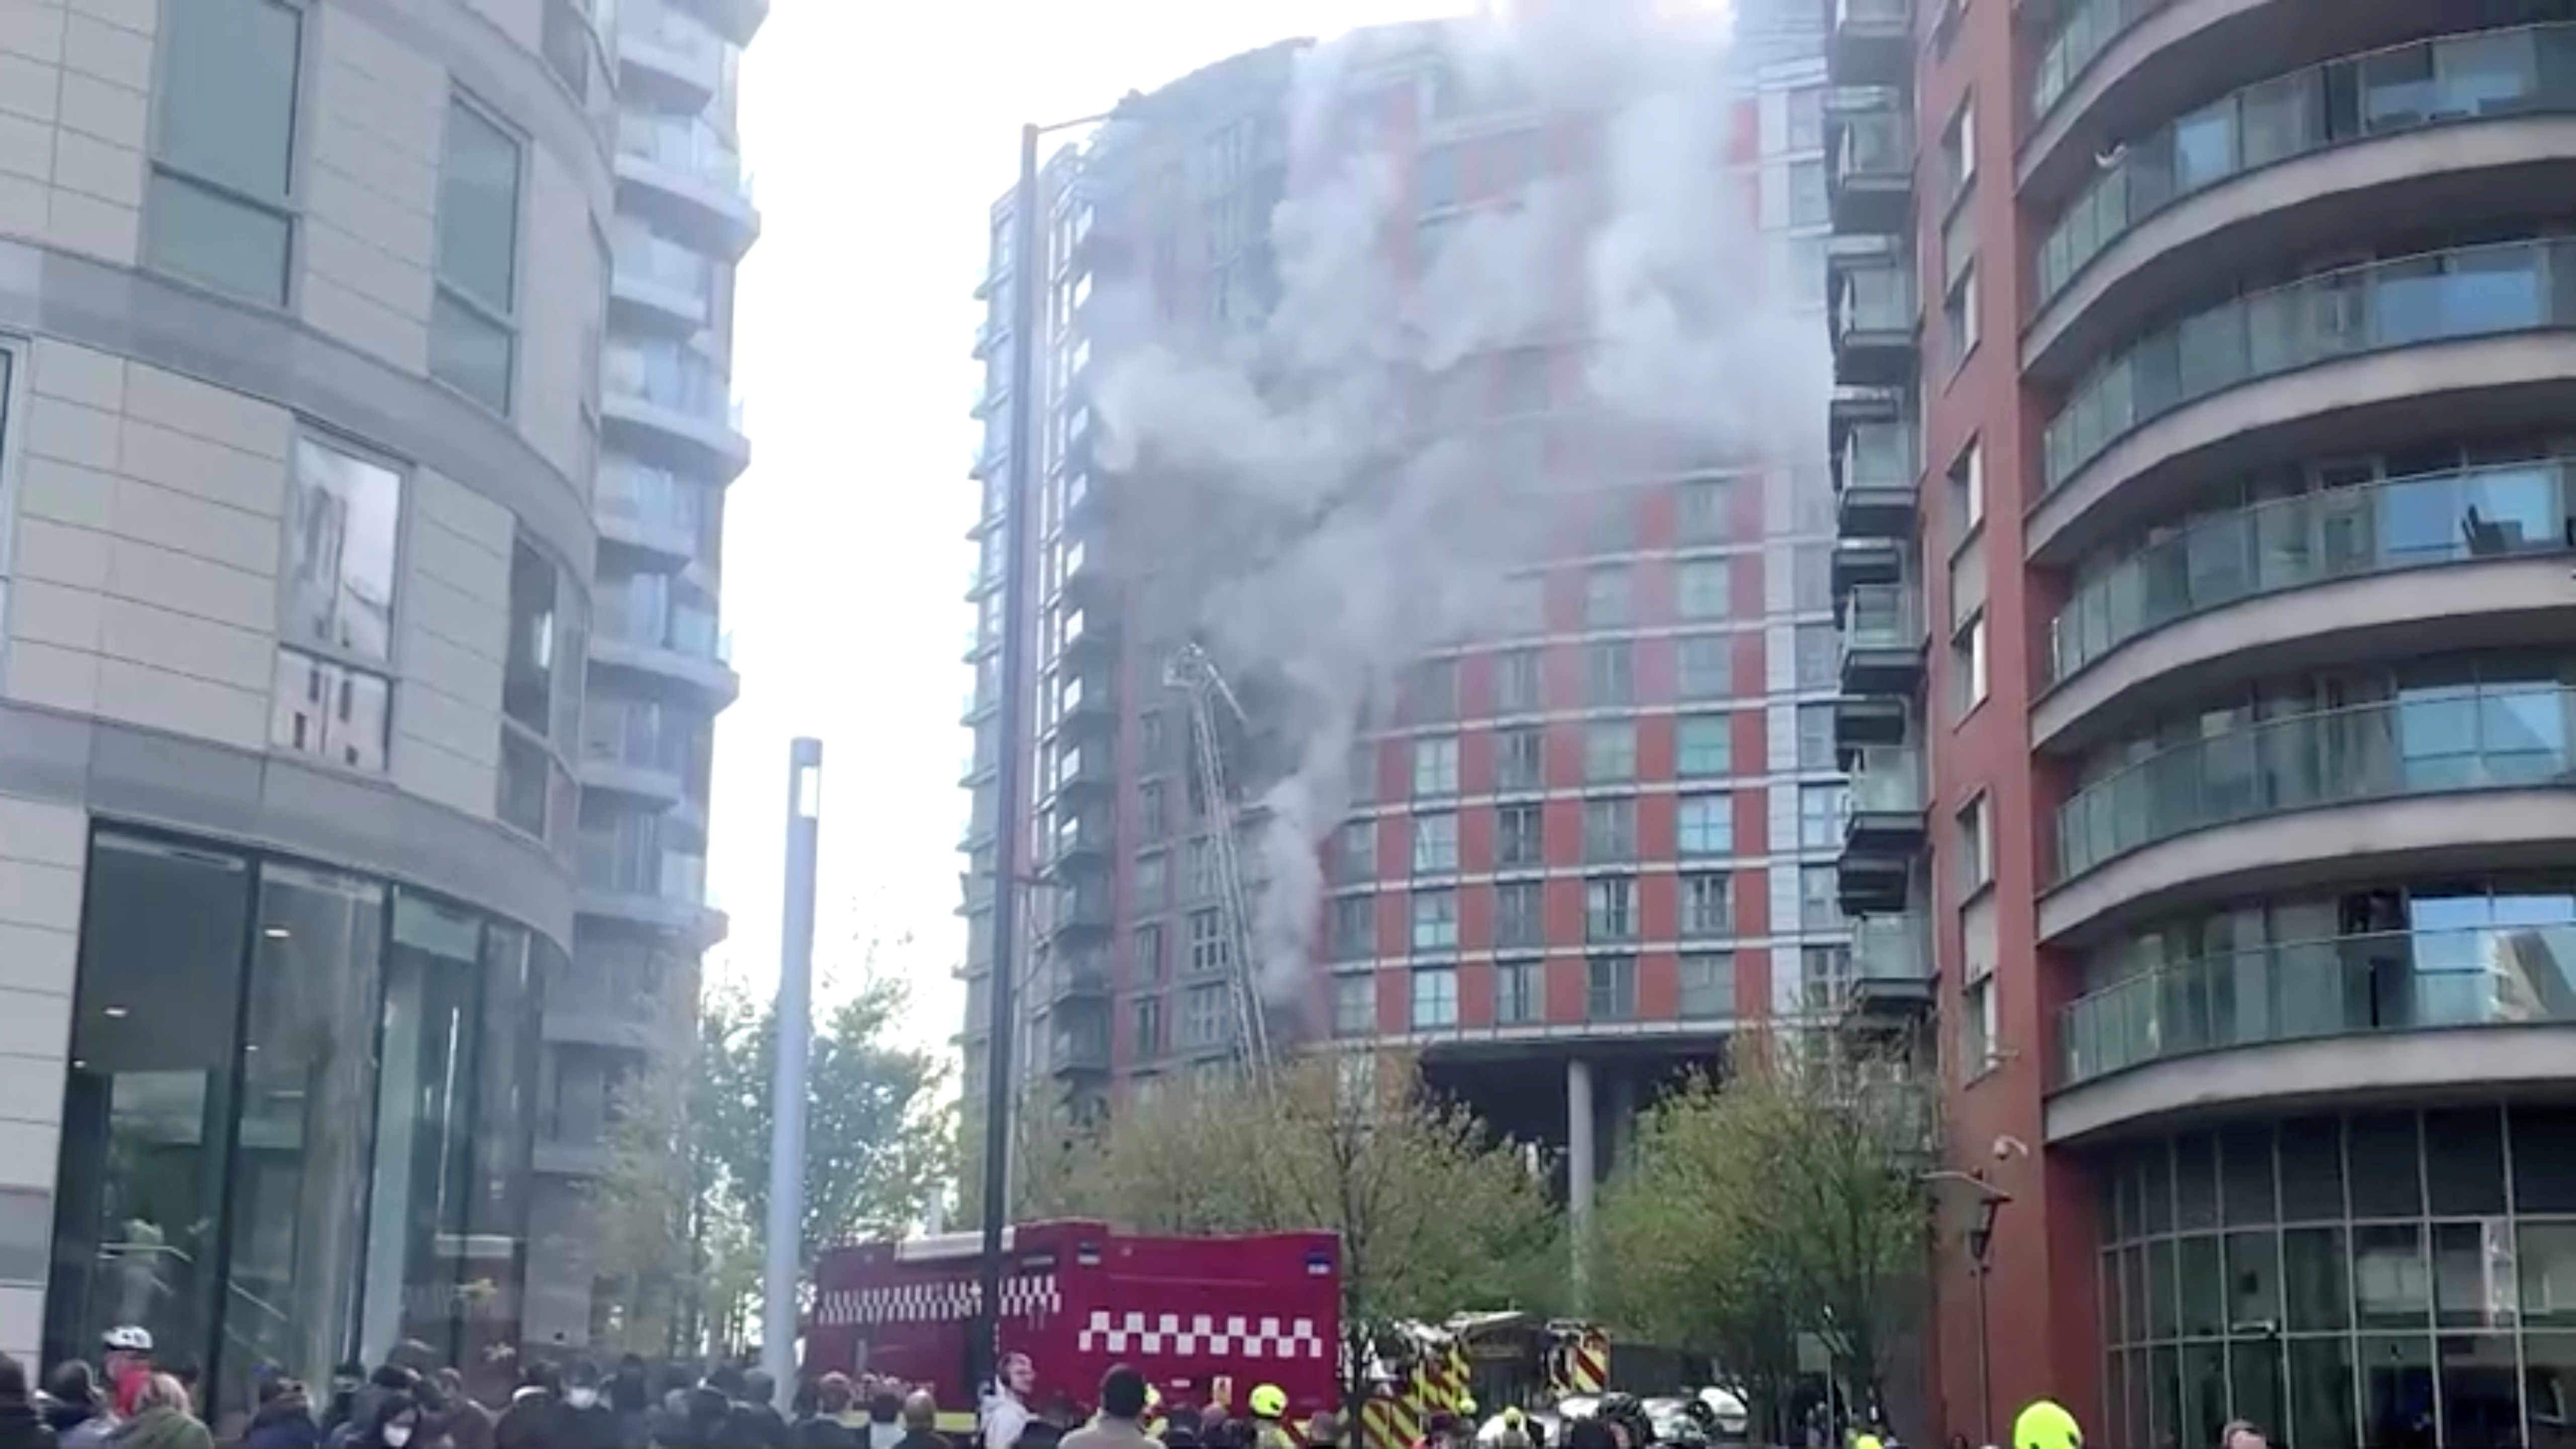 Firefighters work to put out the flames at the cladding panel-covered Tower Hamlets, New Providence Wharf in East London, Britain May 7, 2021 in this still image taken from social media video. Twitter @iamclaricelin via REUTERS